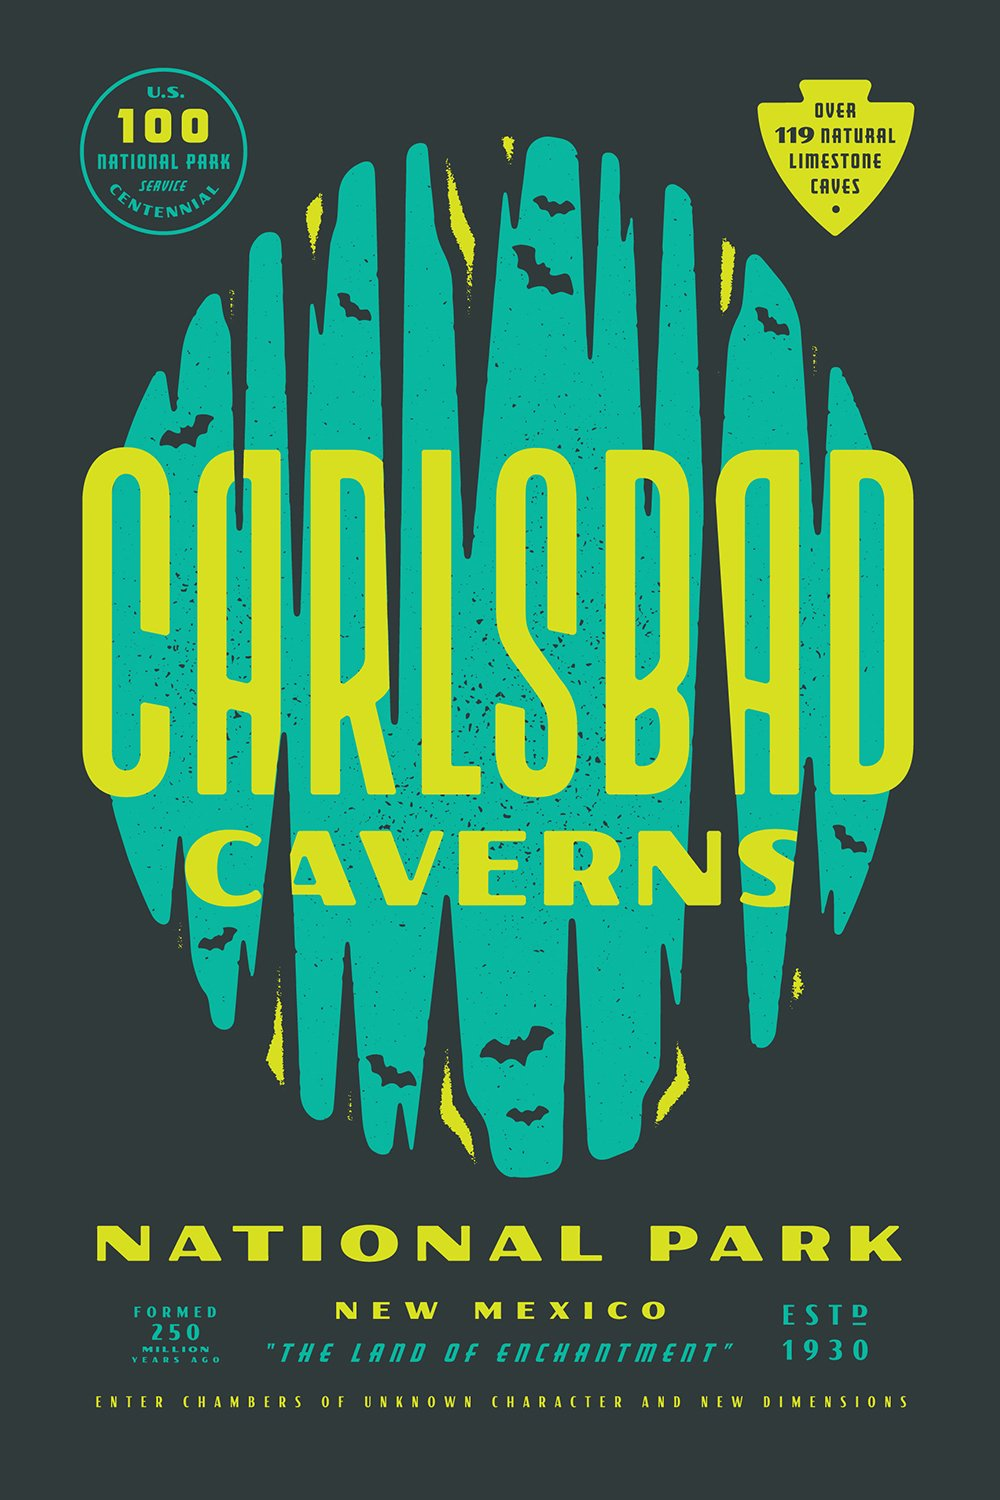 Carlsbad Caverns National Park designed by Lauren Dickens  With Type Hike, 59 Graphic Designers Celebrate the National Park Service Centennial by Heather Corcoran